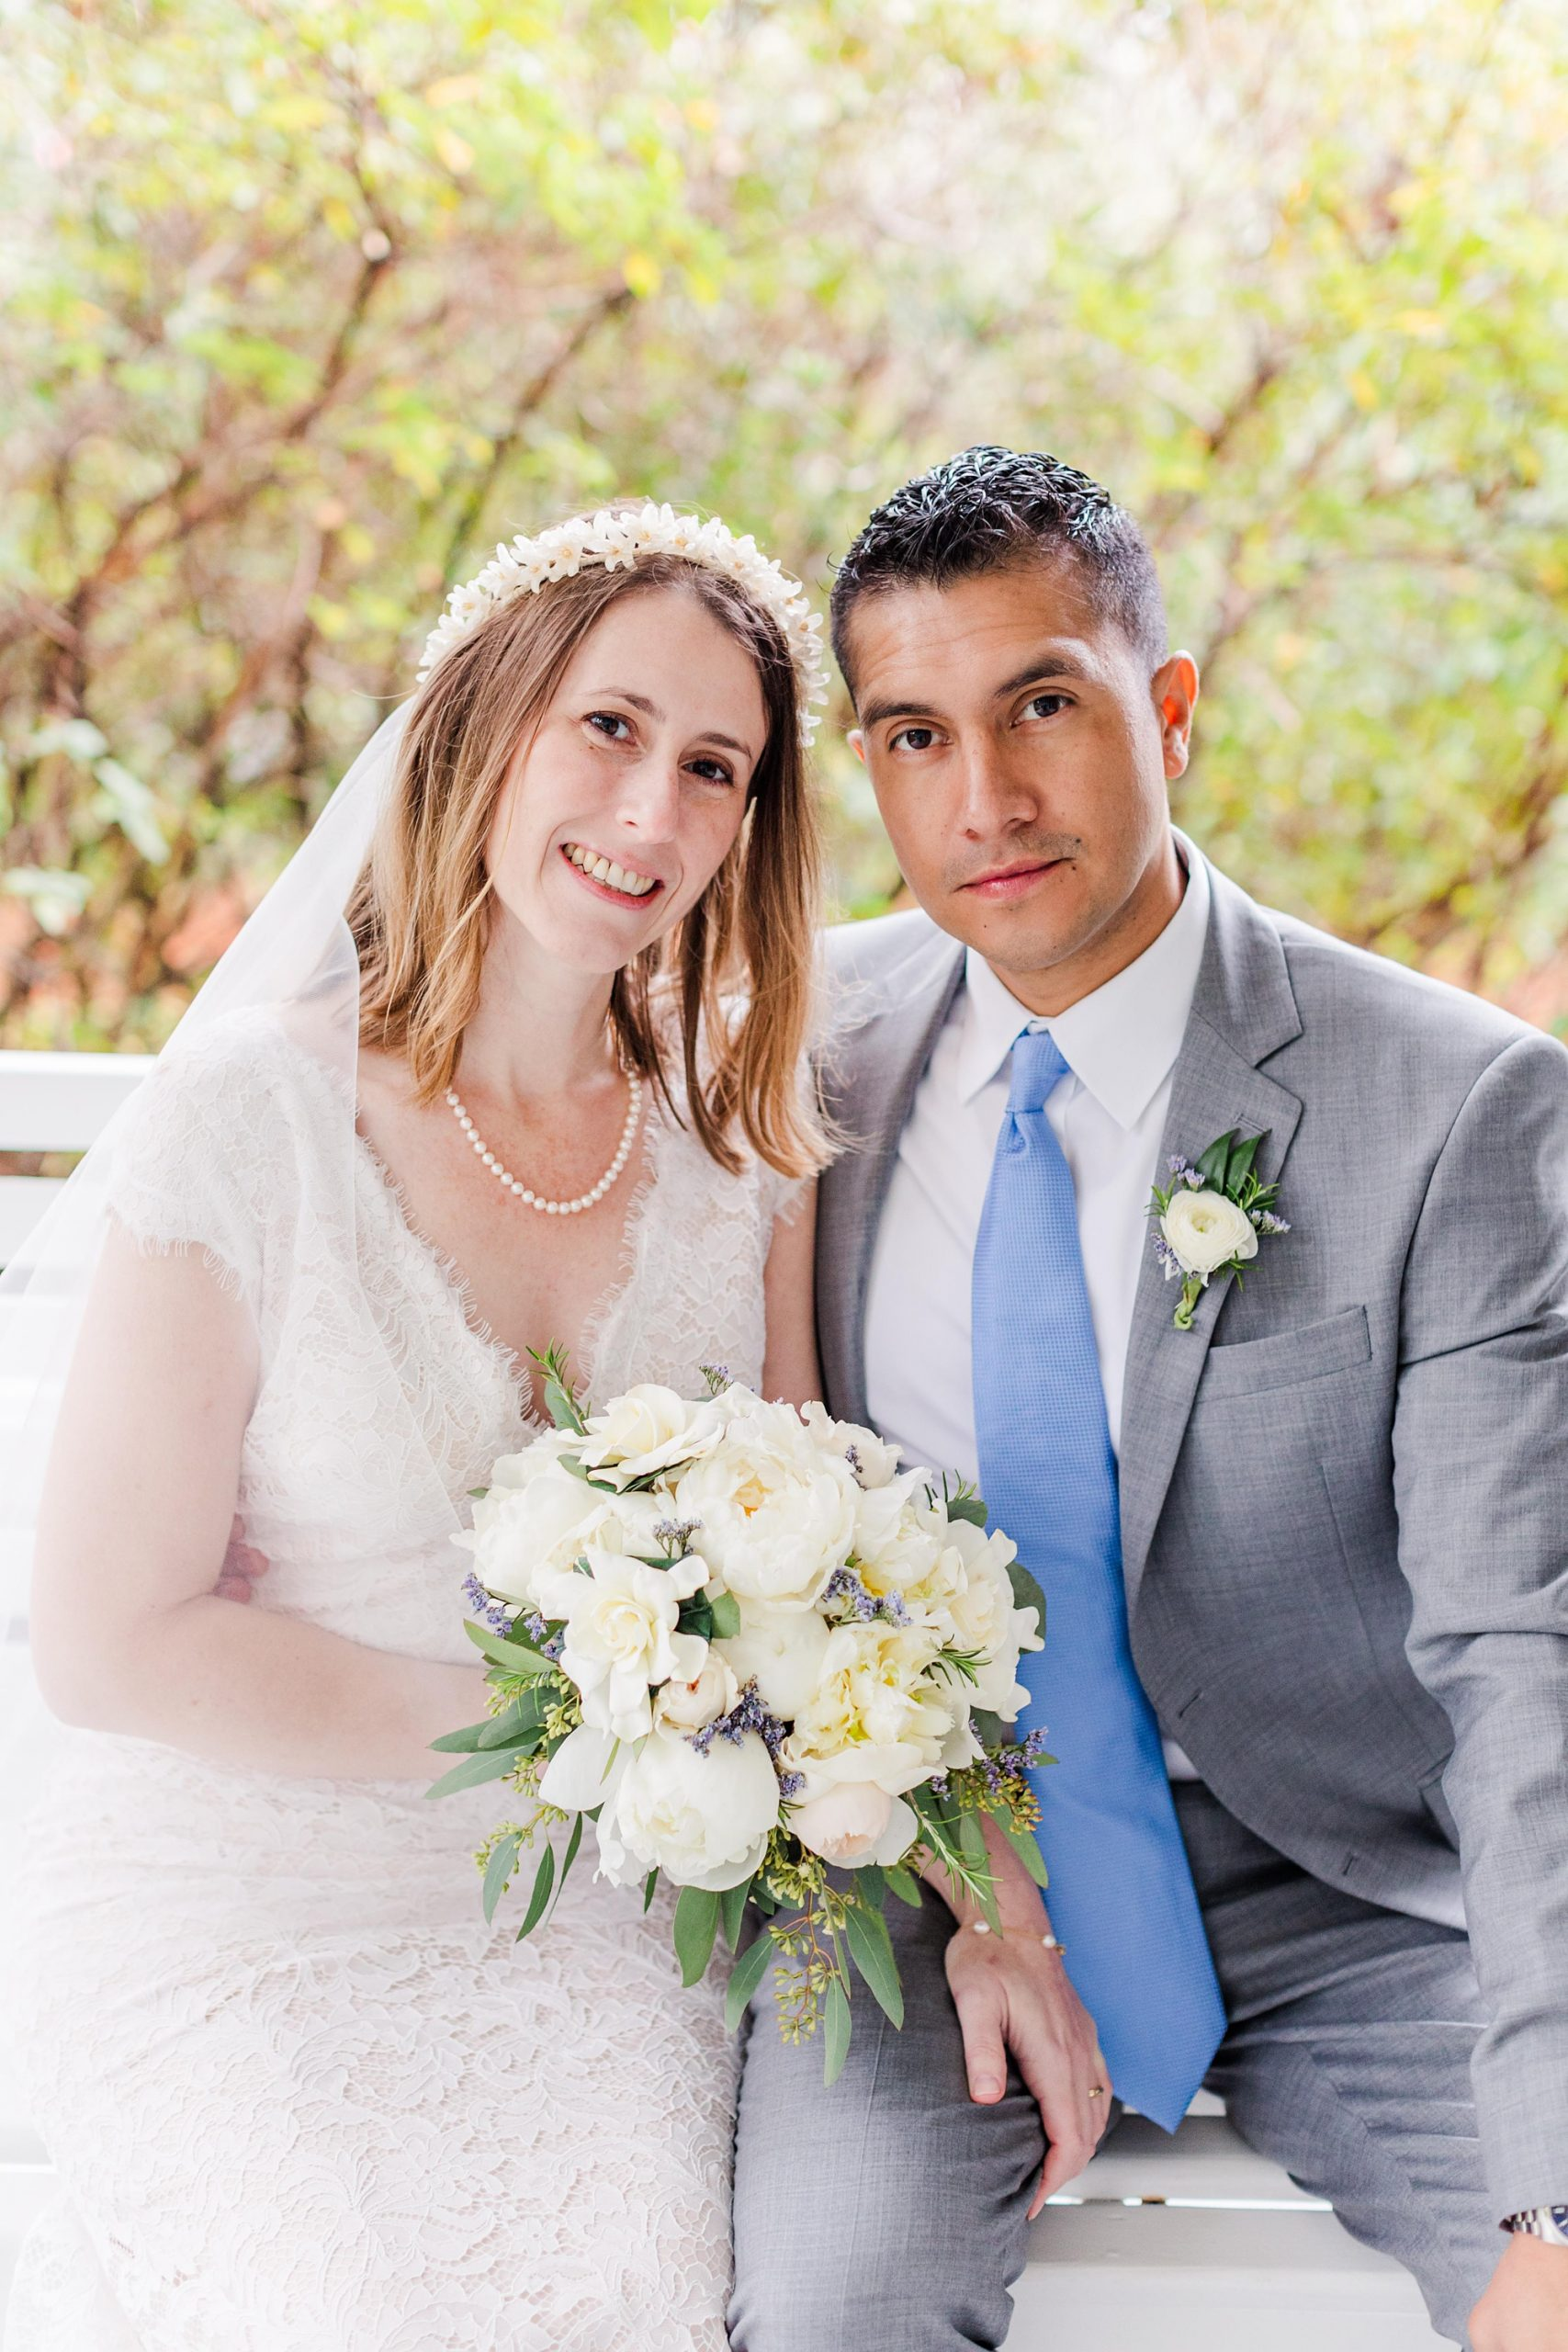 newlyweds pose on front porch swing during intimate Springhill wedding day